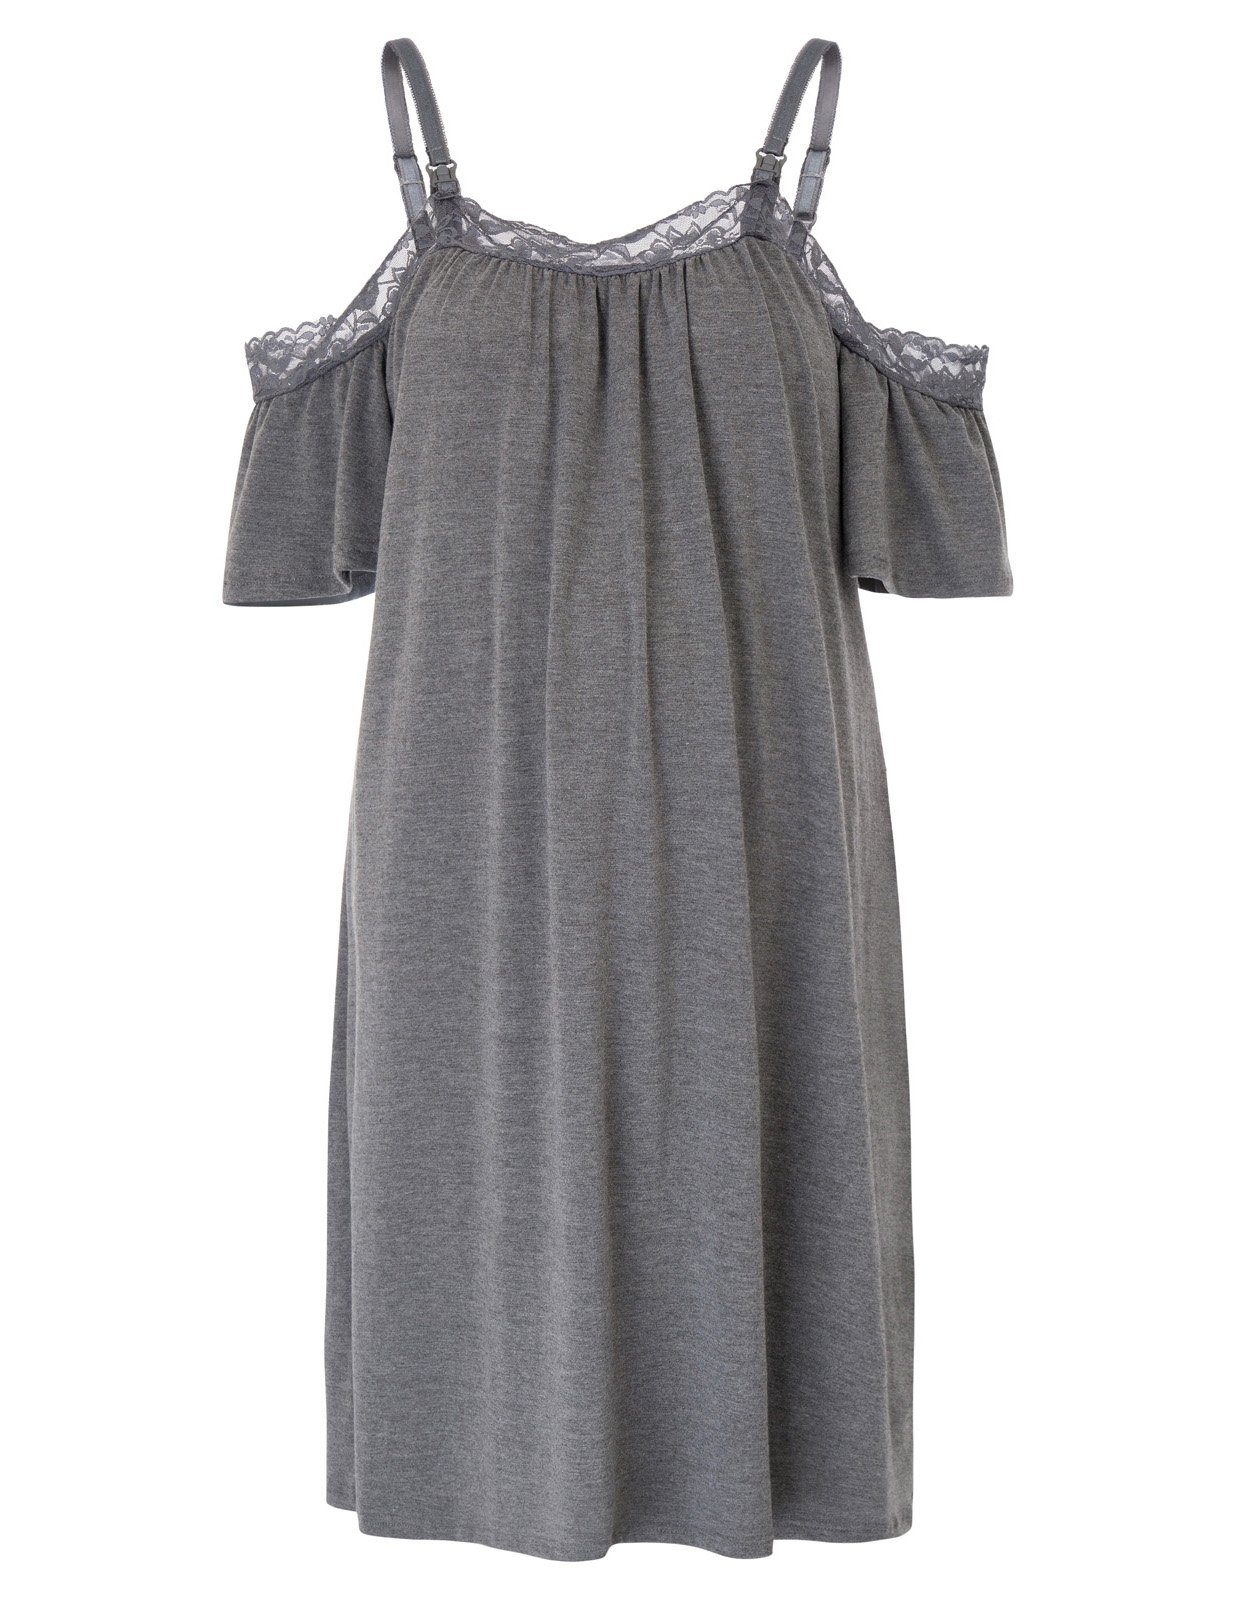 Maternity Dress Spaghetti Strap Cotton Sleepwear with Adjustable Strap XXL Dark Gray